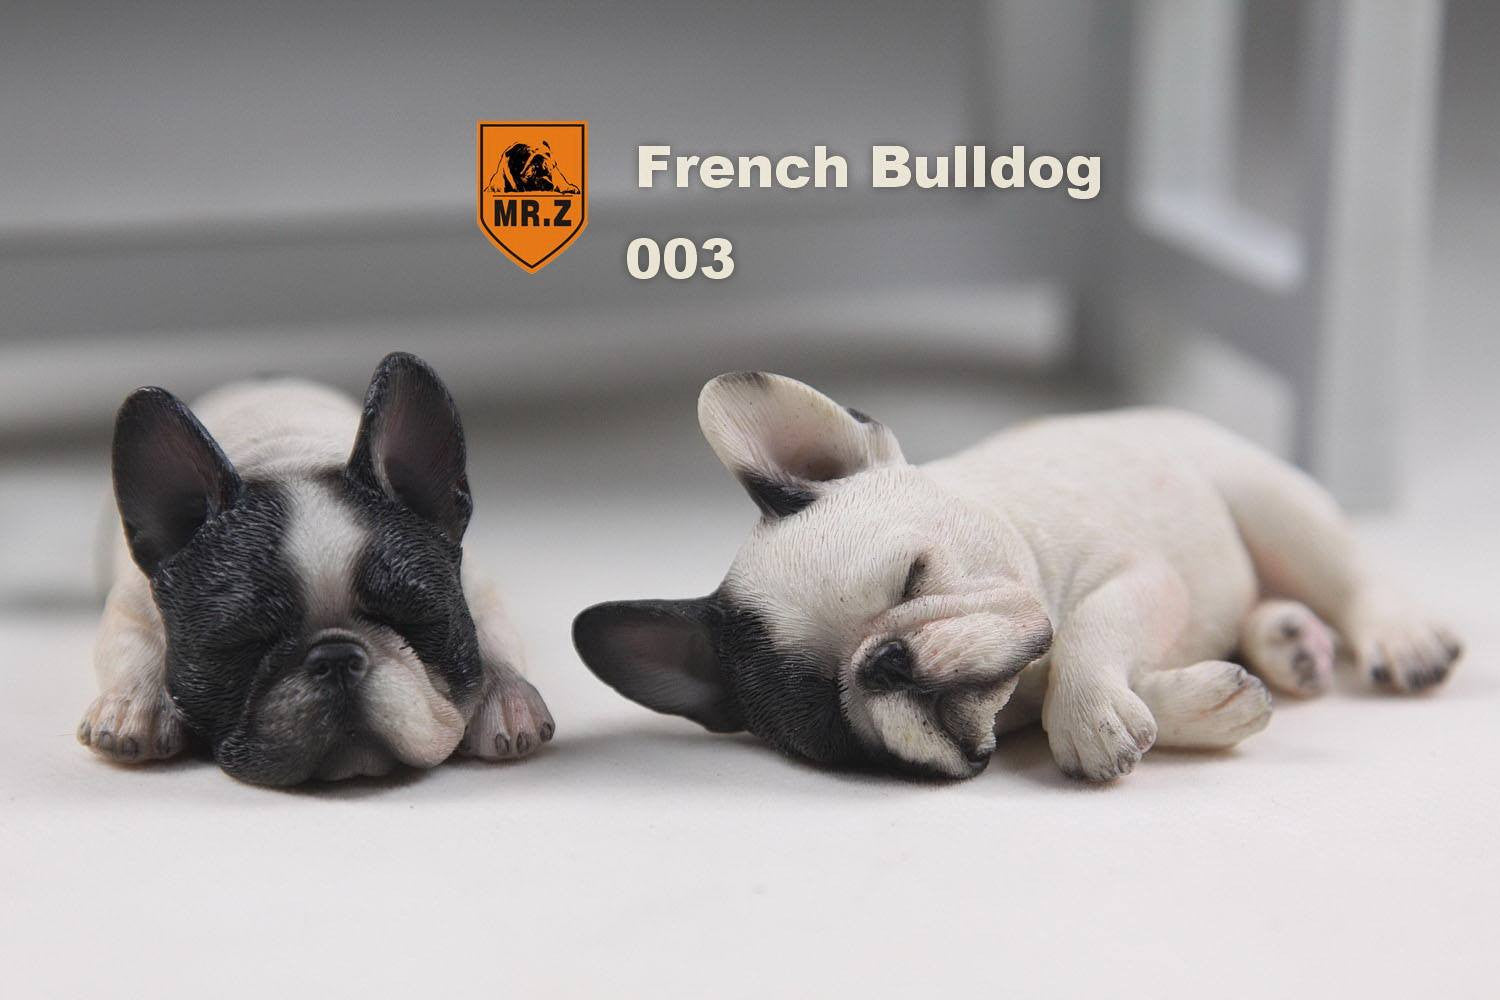 MR.Z - Real Animal Series No.9 - 1/6th Scale French Bulldog (Sleep Mode) 001-005 - Marvelous Toys - 14